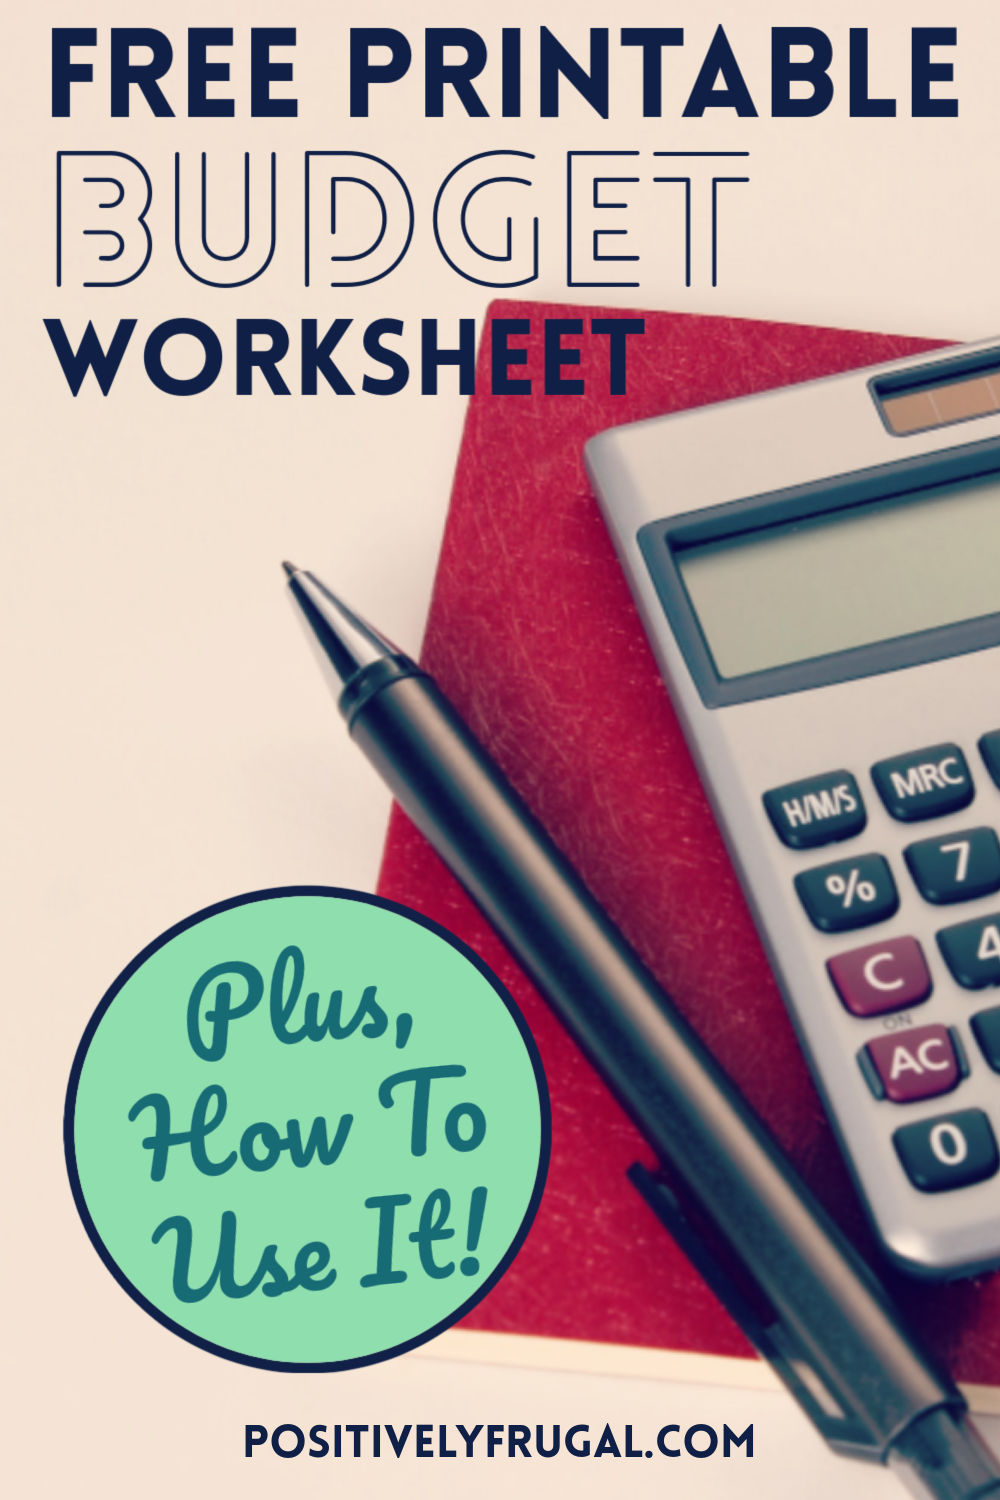 Free Printable Budget Worksheet Plus How To Use It by PositivelyFrugal.com